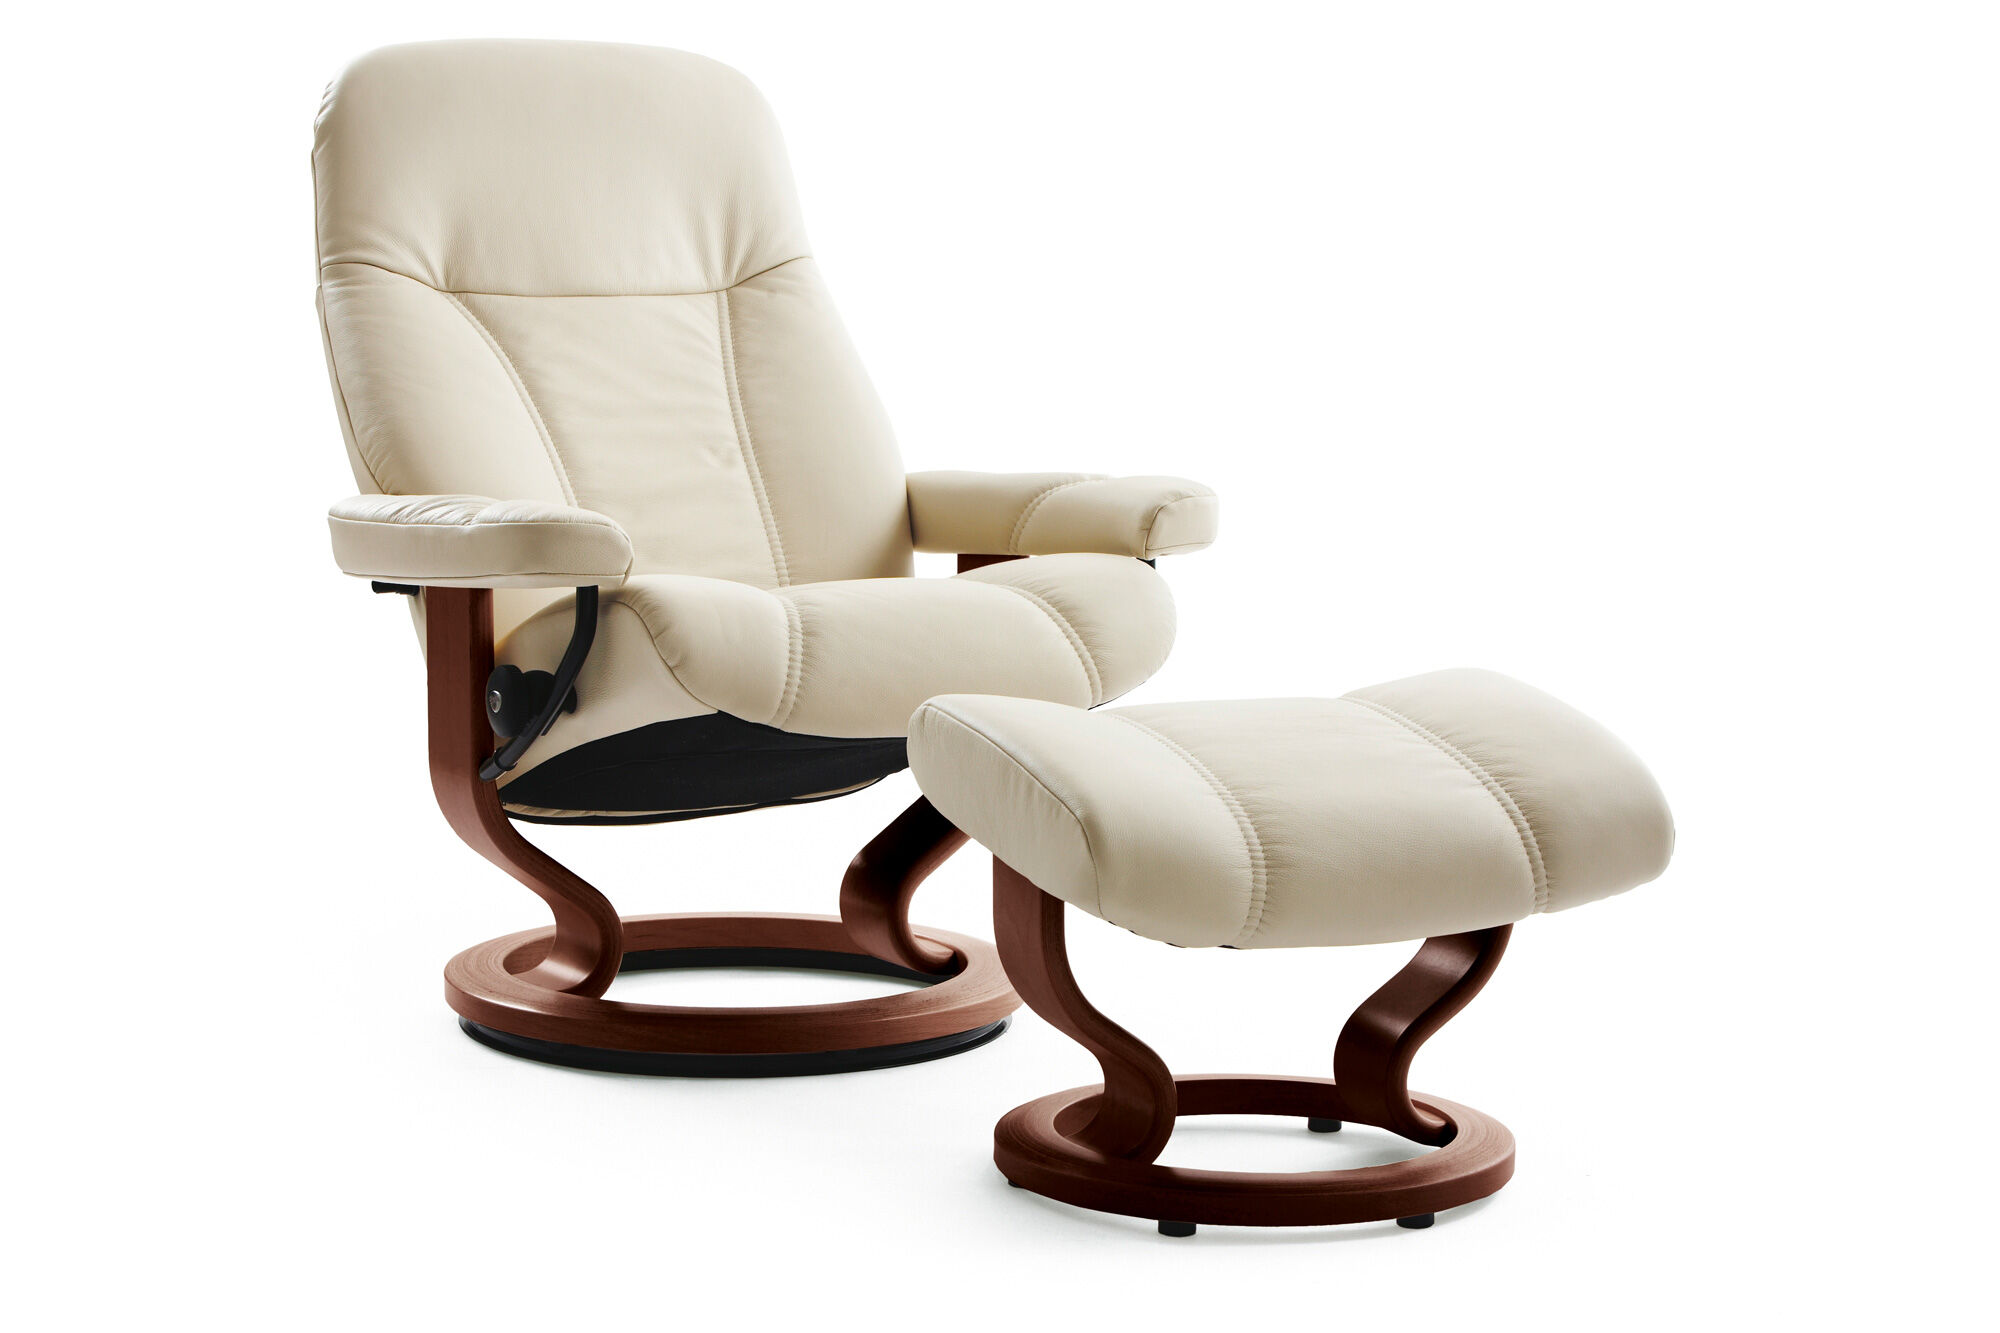 Cream Chairs Leather Medium Swivel Chair And Ottoman In Cream Mathis